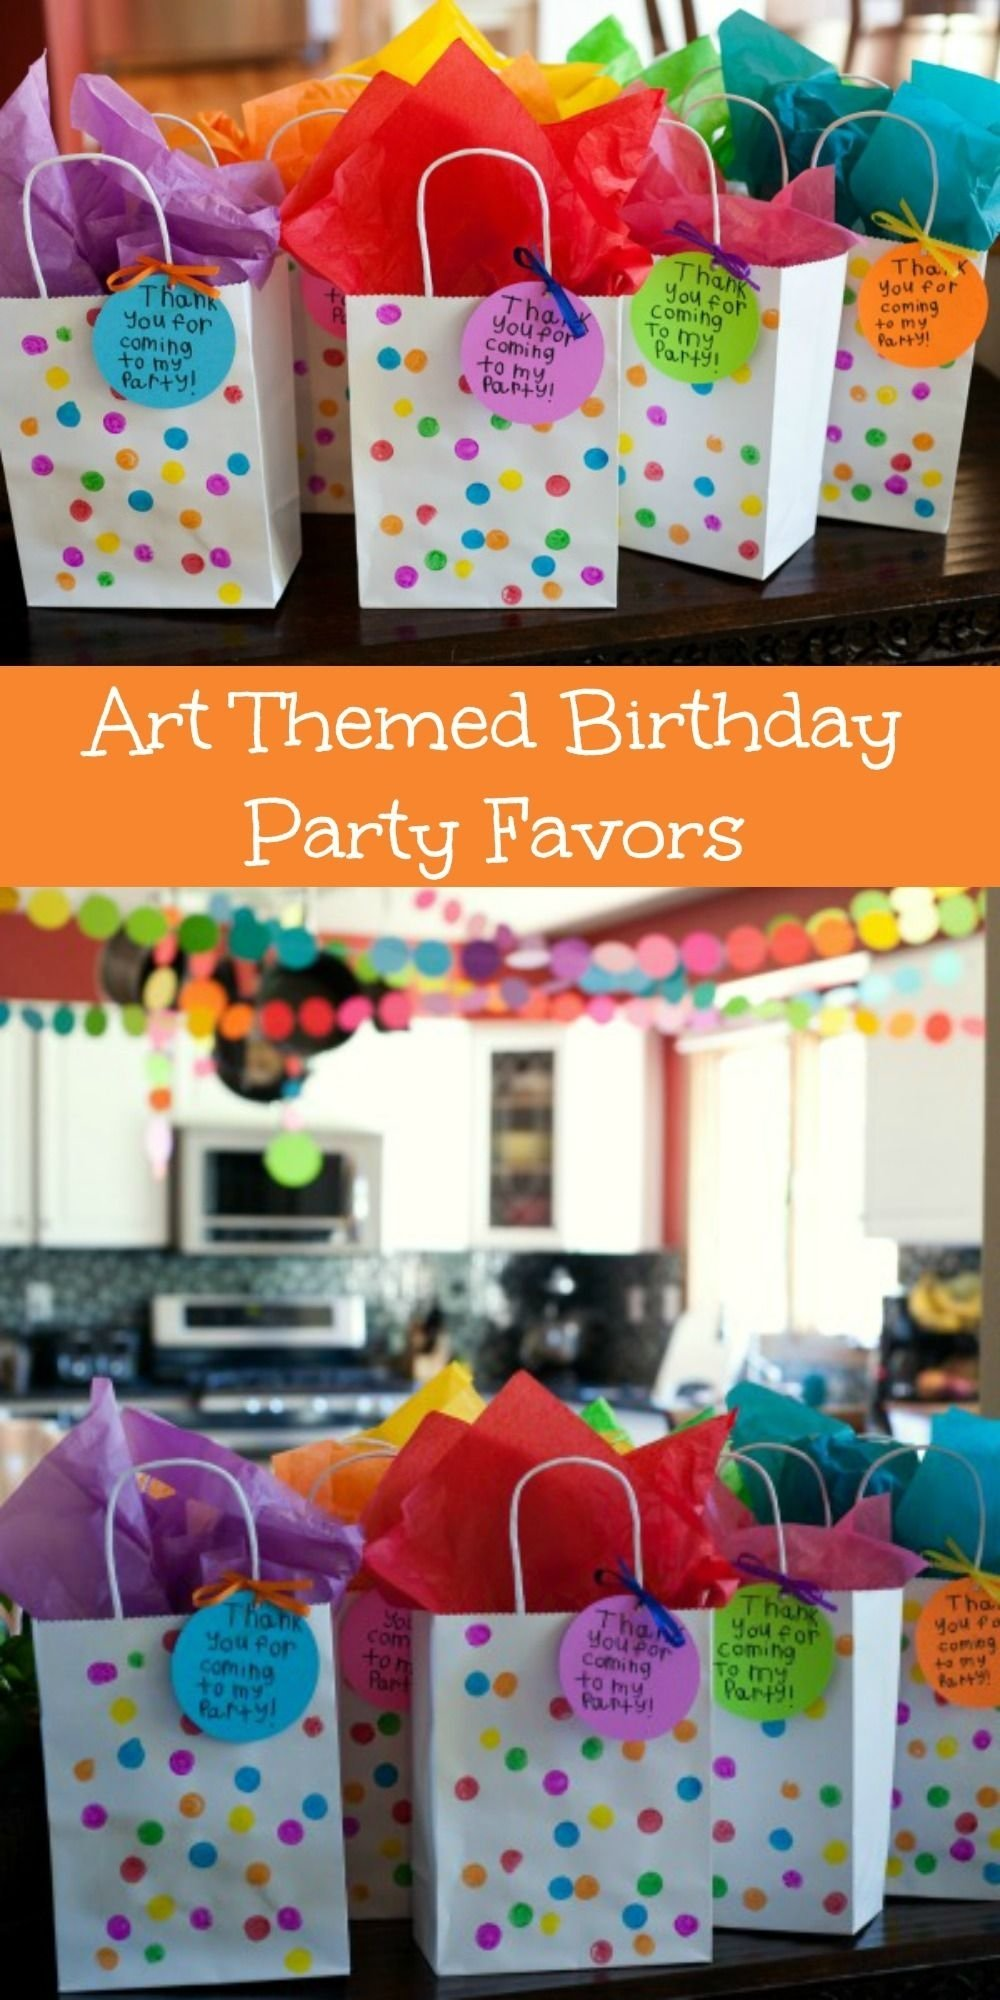 10 Spectacular Goodie Bag Ideas For Kids Birthday Parties fun and usable art themed birthday party favors themed birthday 2021